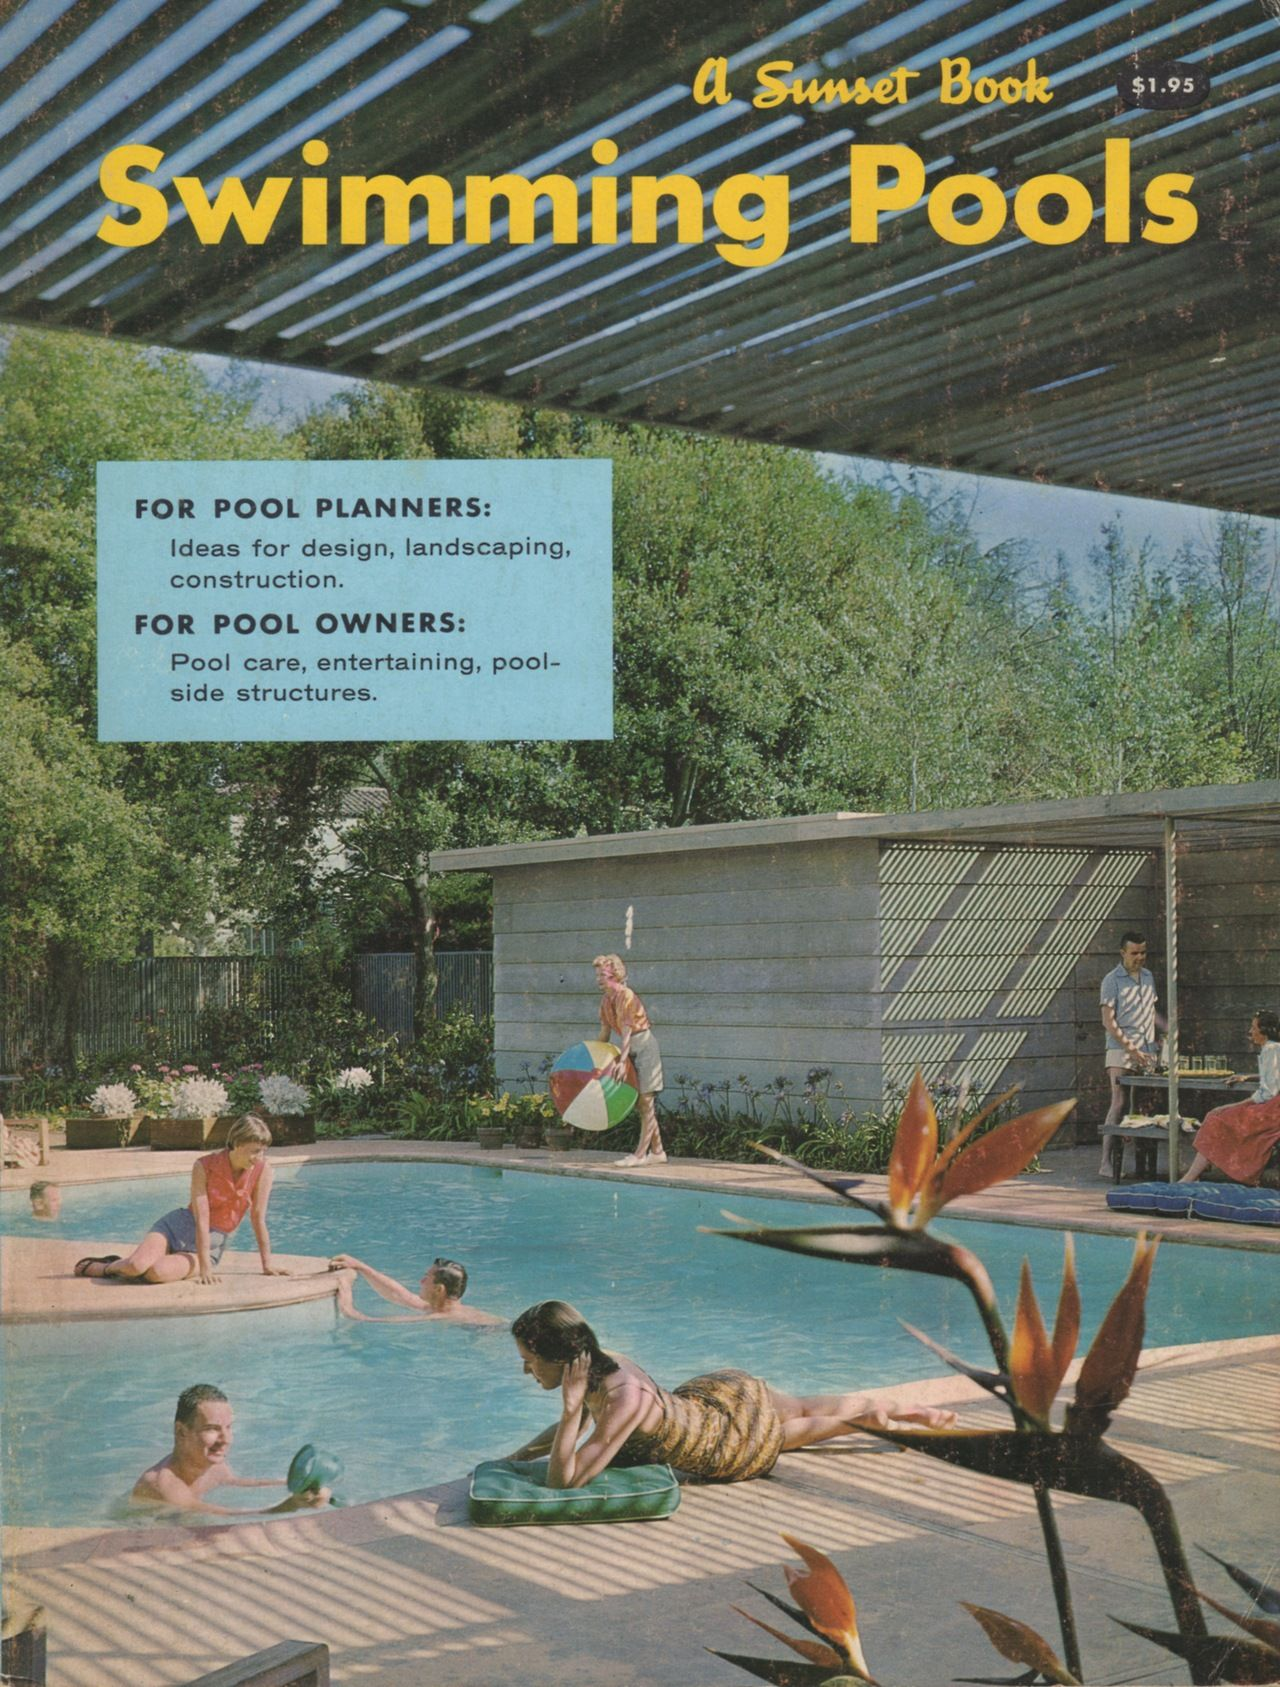 Swimming pools a sunset book lane publishing 1959 for Pool design book